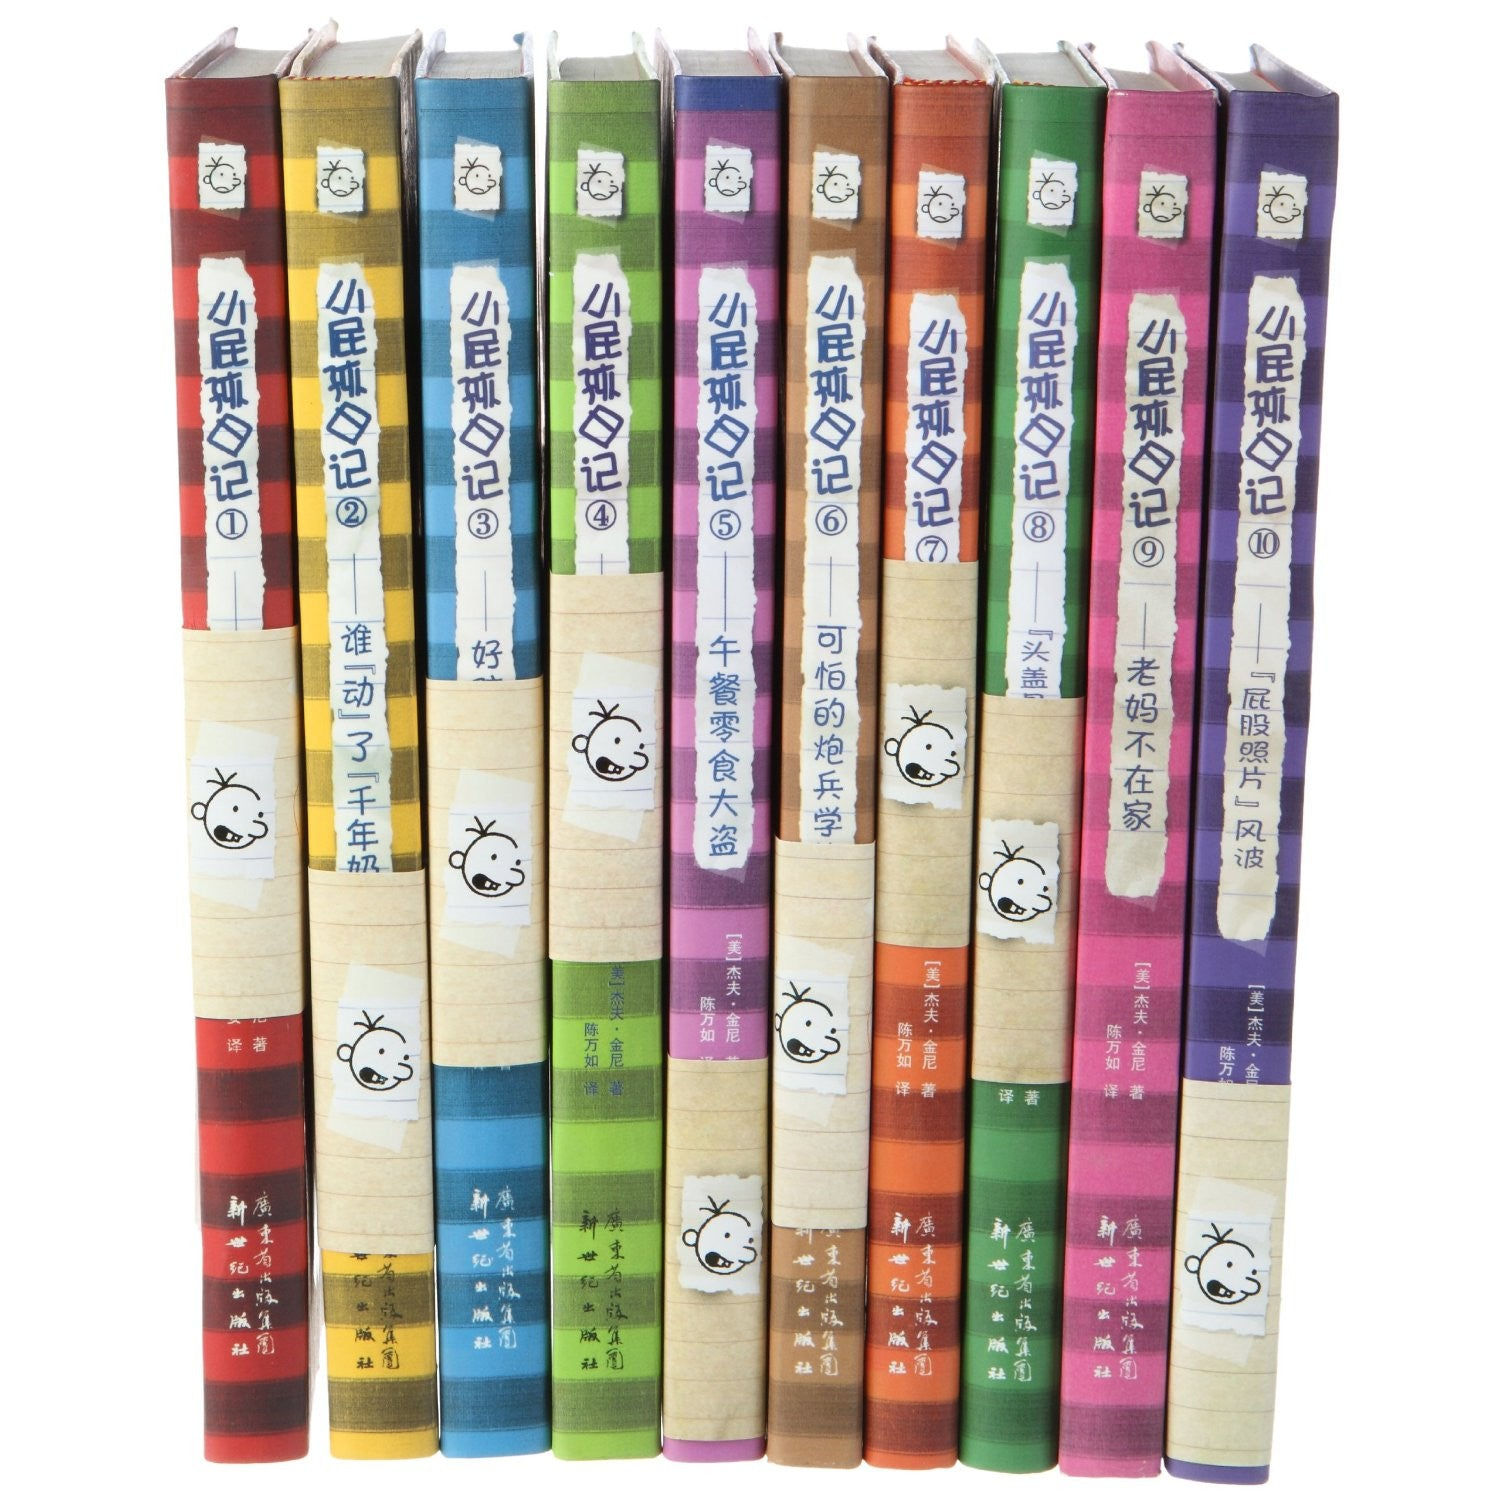 Diary of A Wimpy Kid Series (10 Volumes)